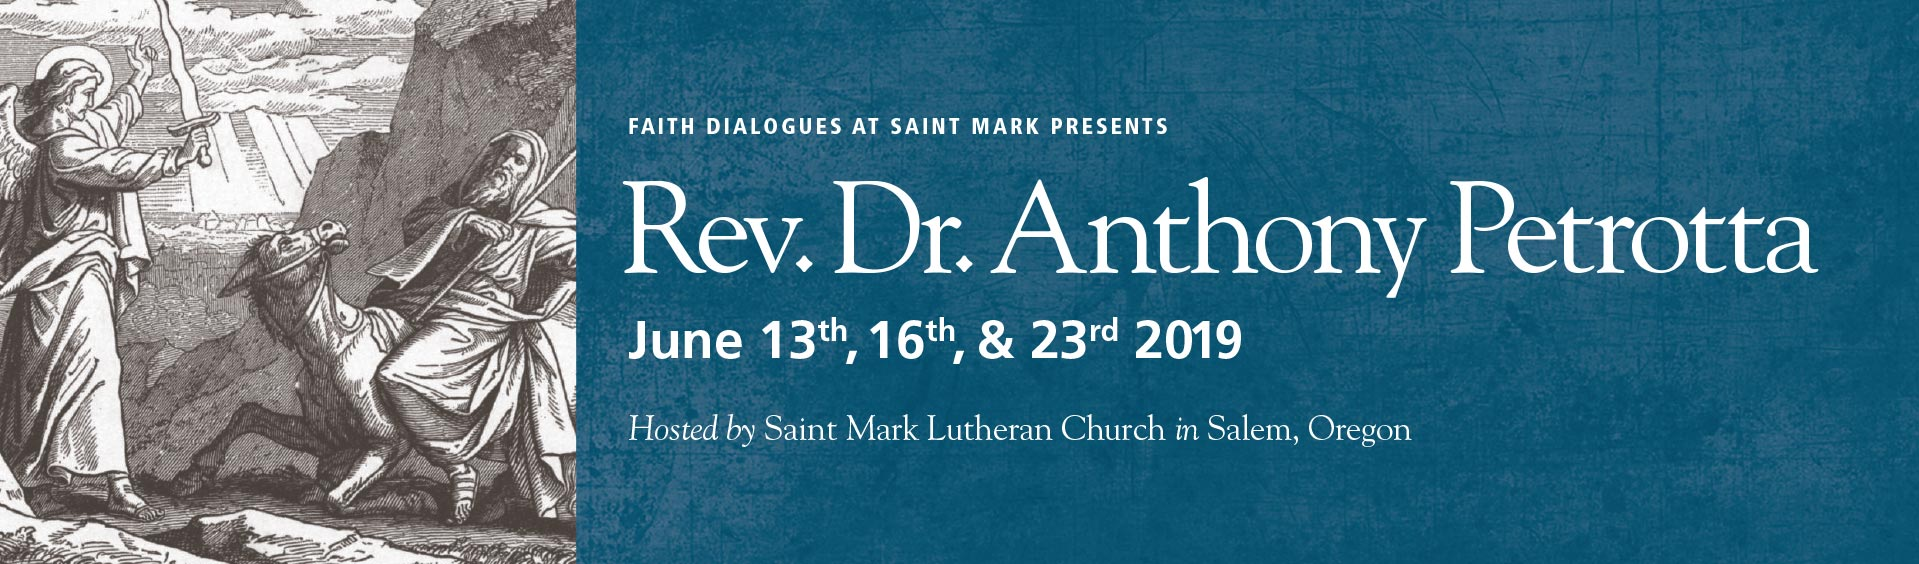 Faith Dialogues with Rev. Dr. Anthony Petrotta